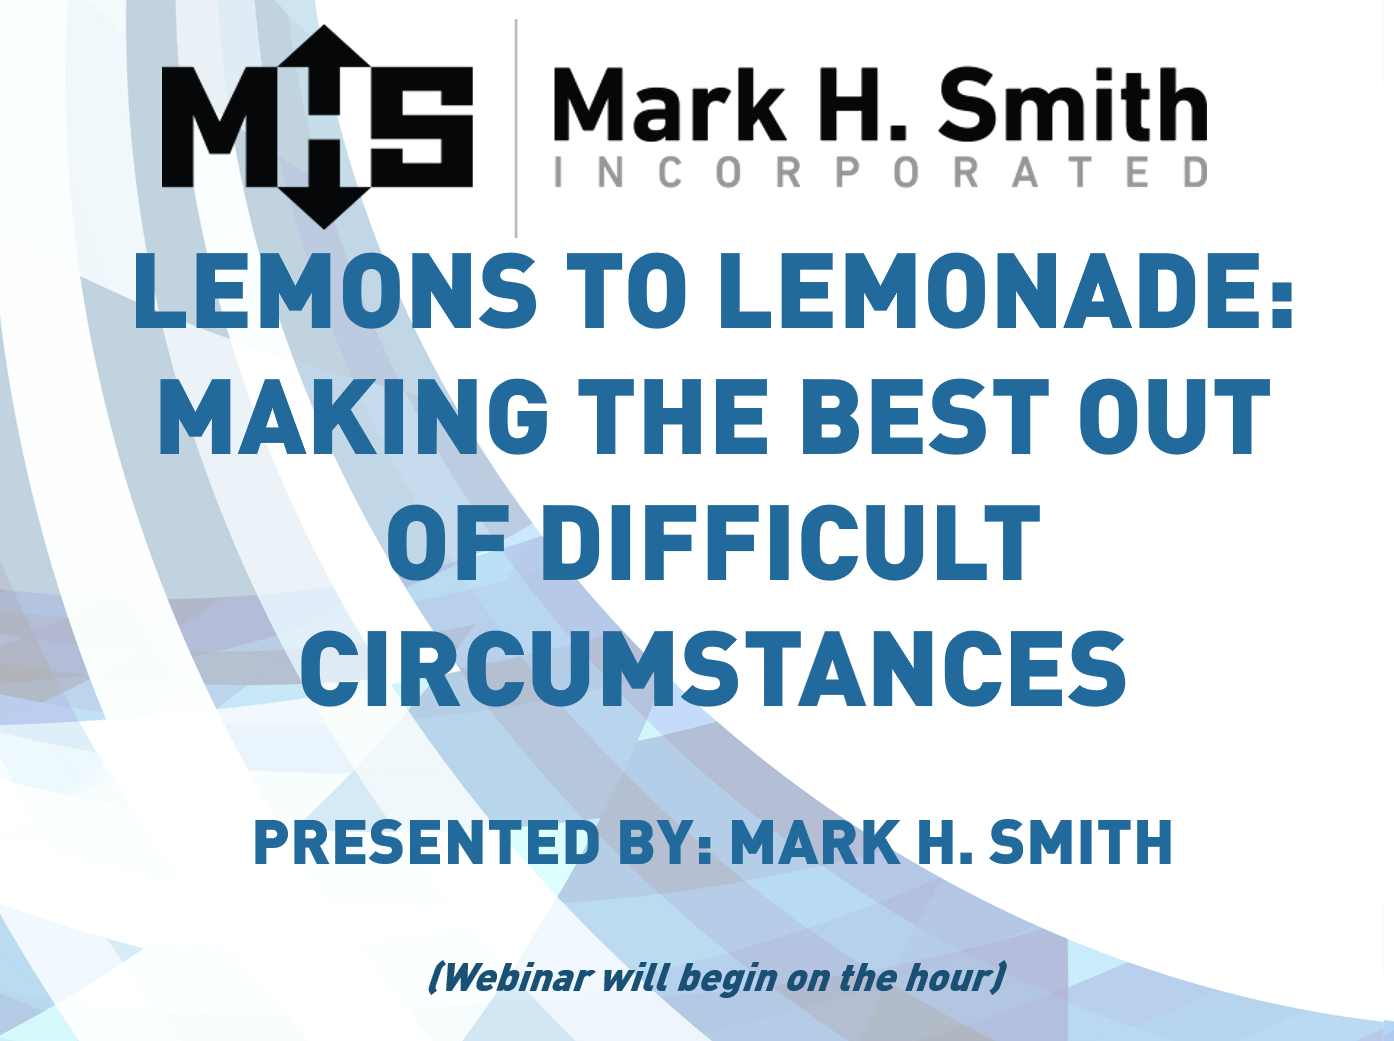 Lemons to Lemonade Making the Best out of Difficult Circumstances.